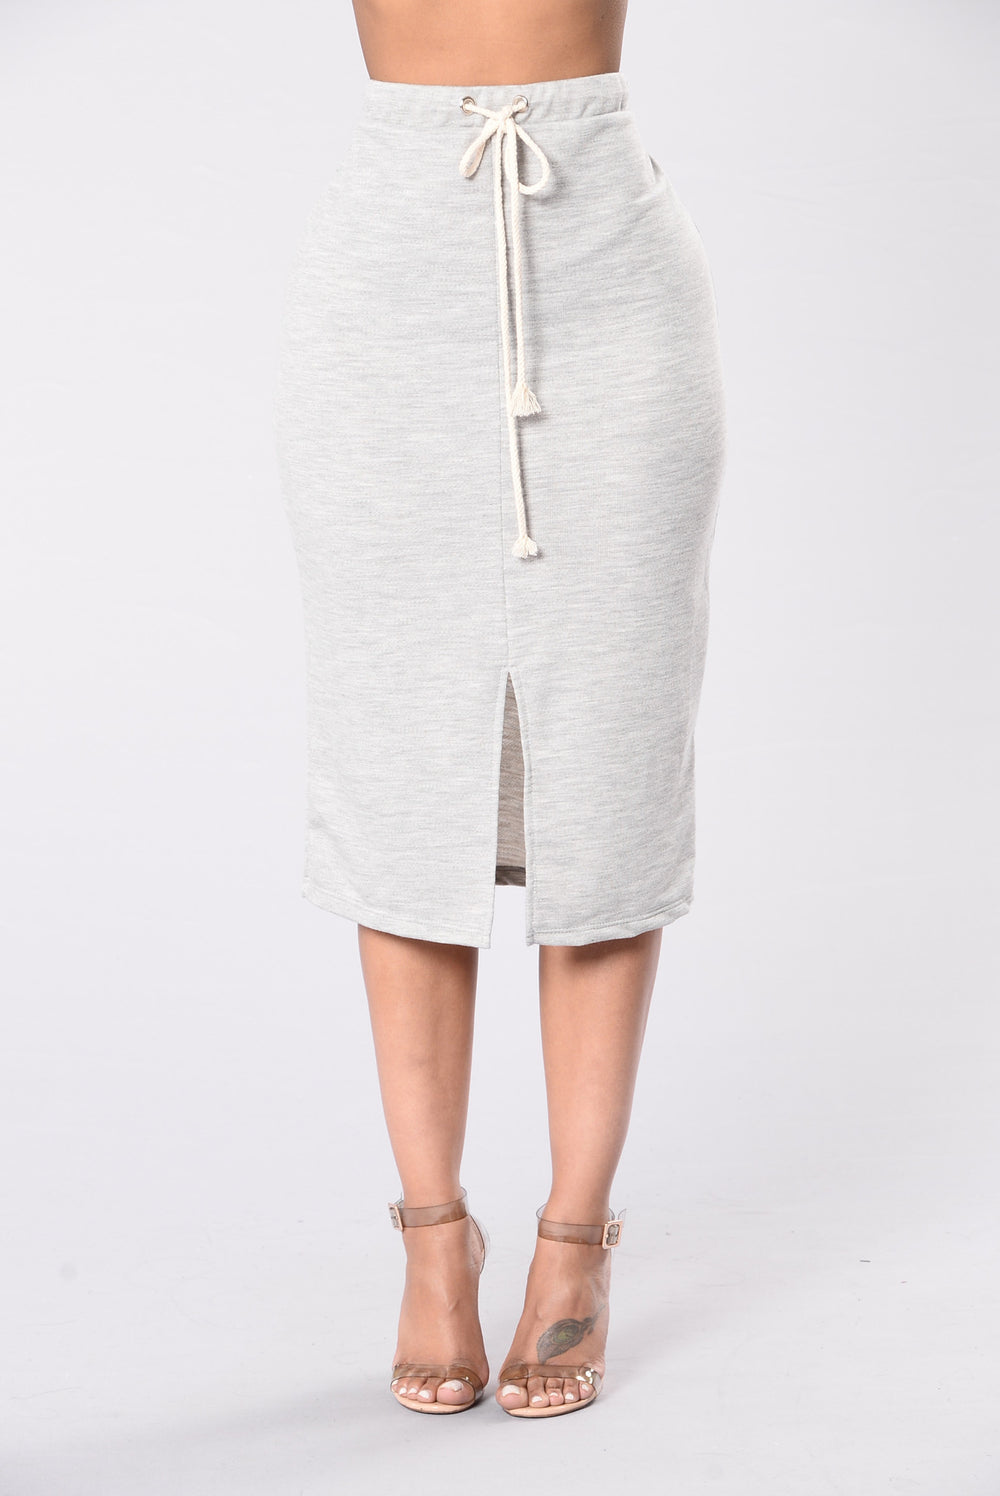 Fierce In Fleece Skirt - Grey